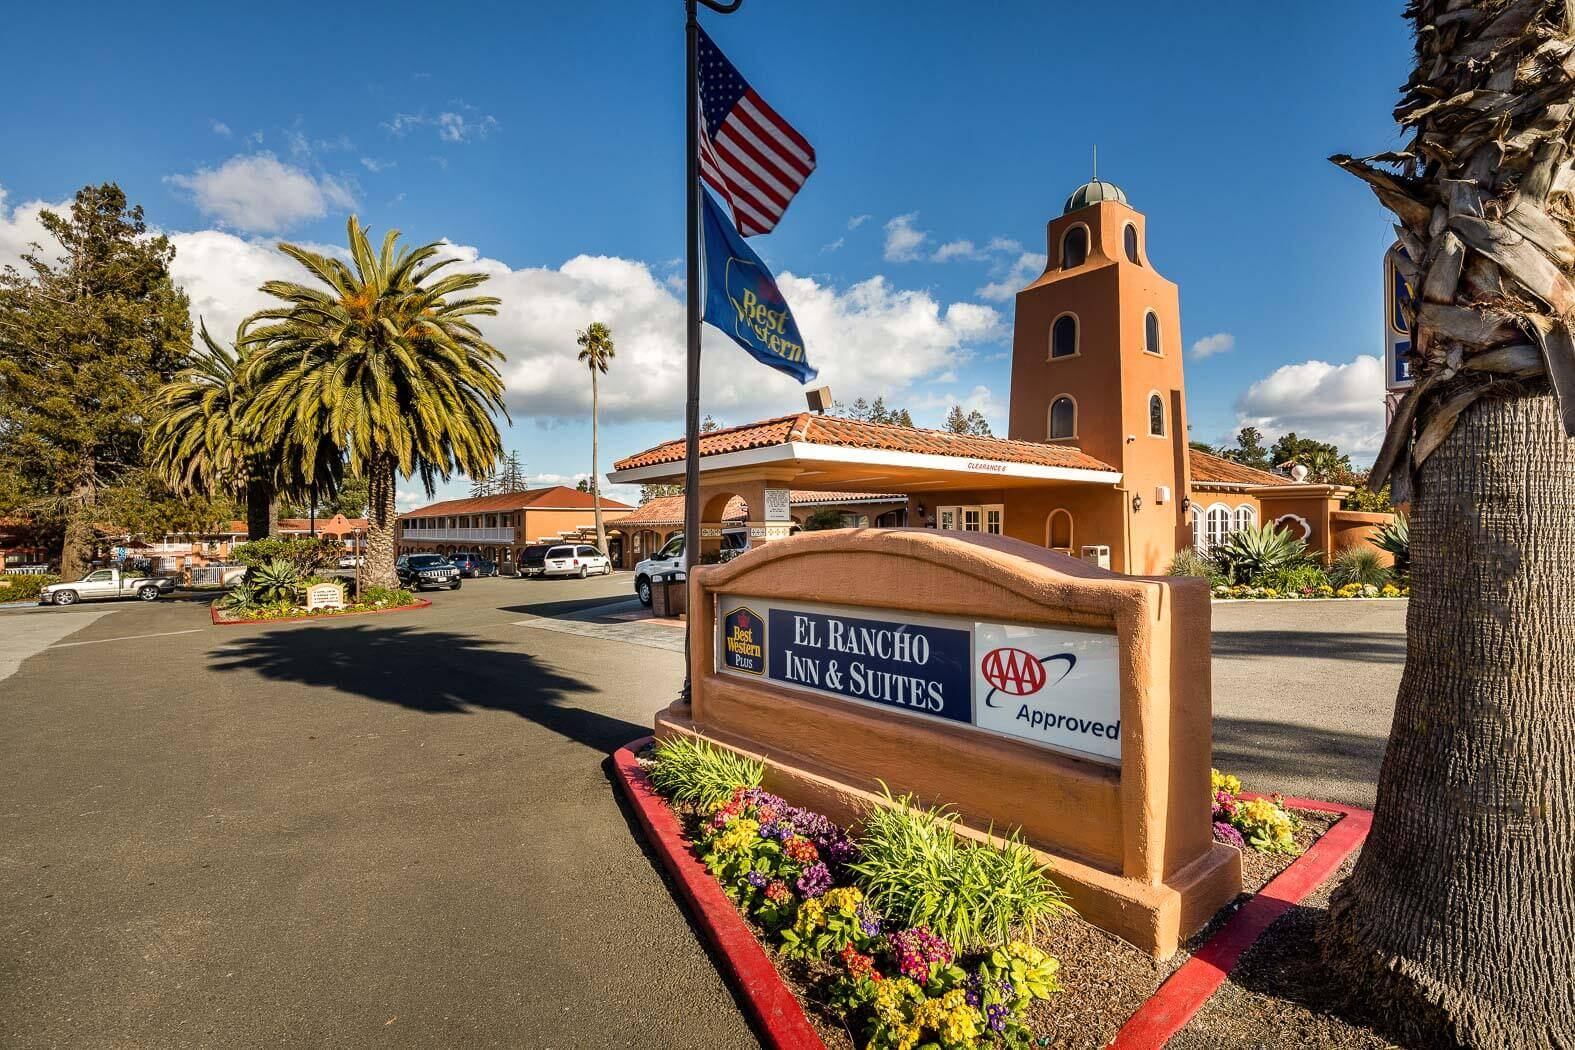 Street and entrance sign to El Rancho Inn & Suites with hotel in the background